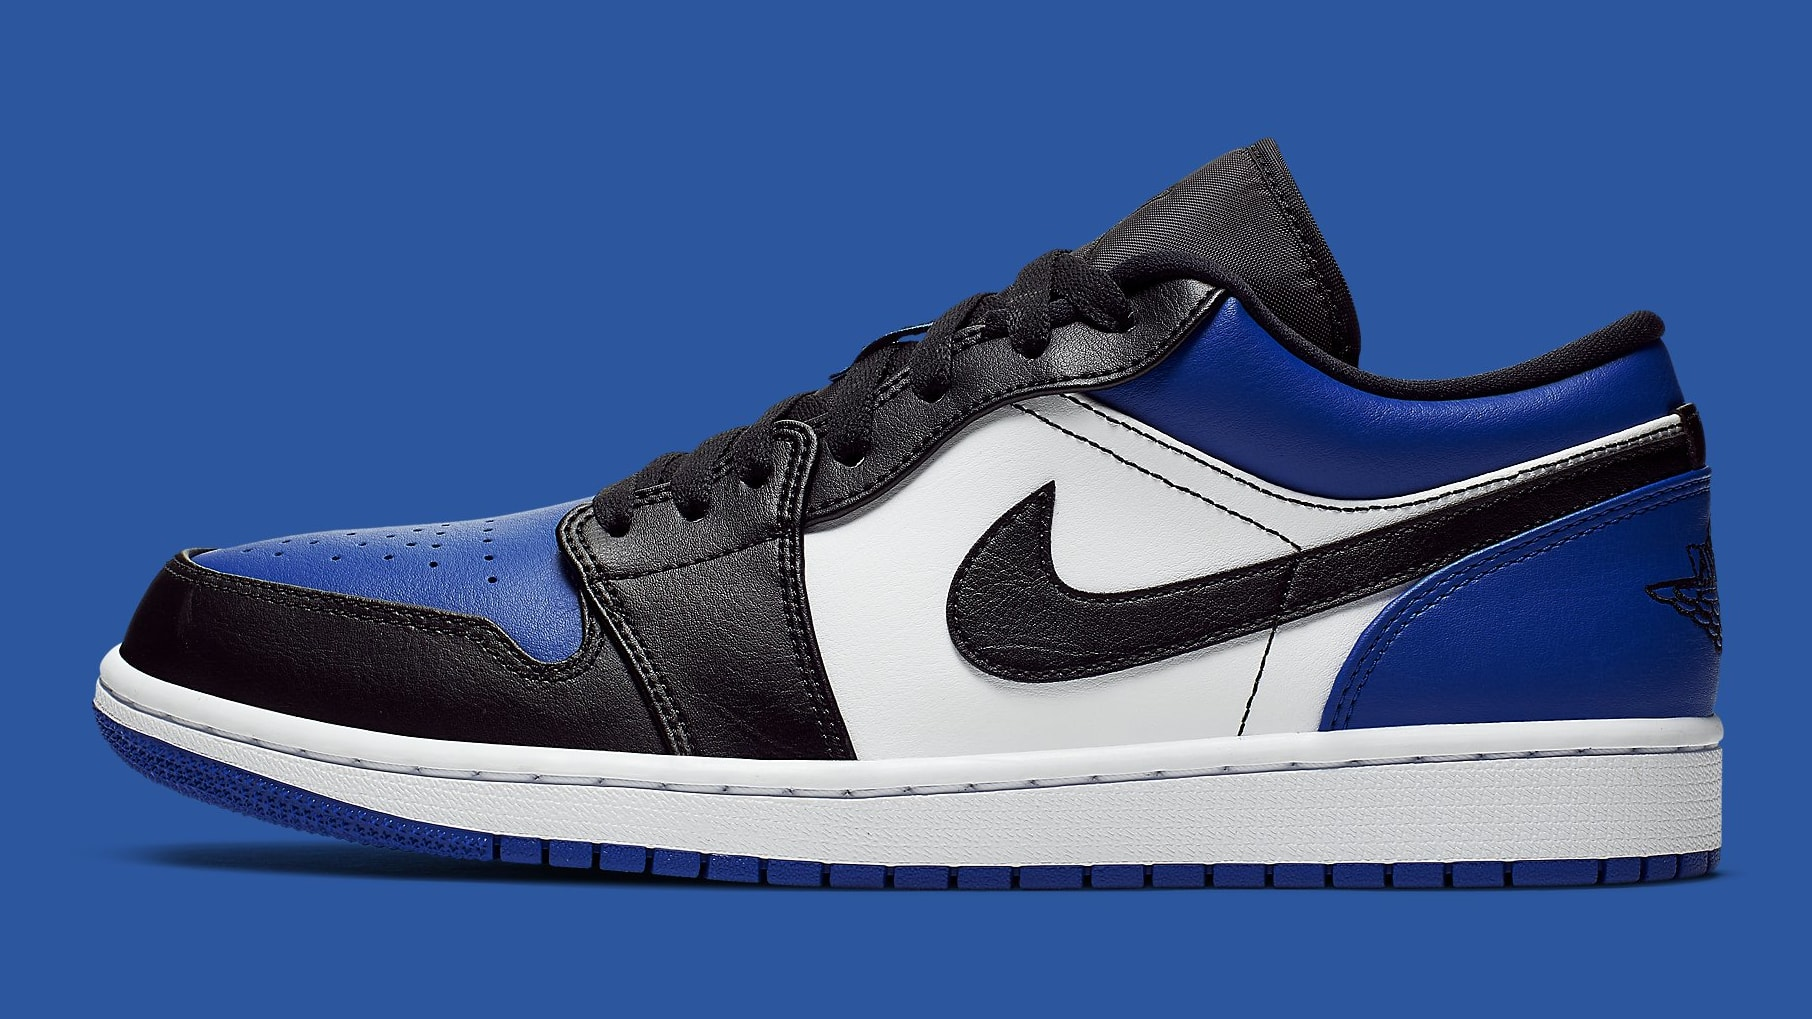 Air Jordan 1 Low Royal Toe Release Date Cq9446 400 Sole Collector